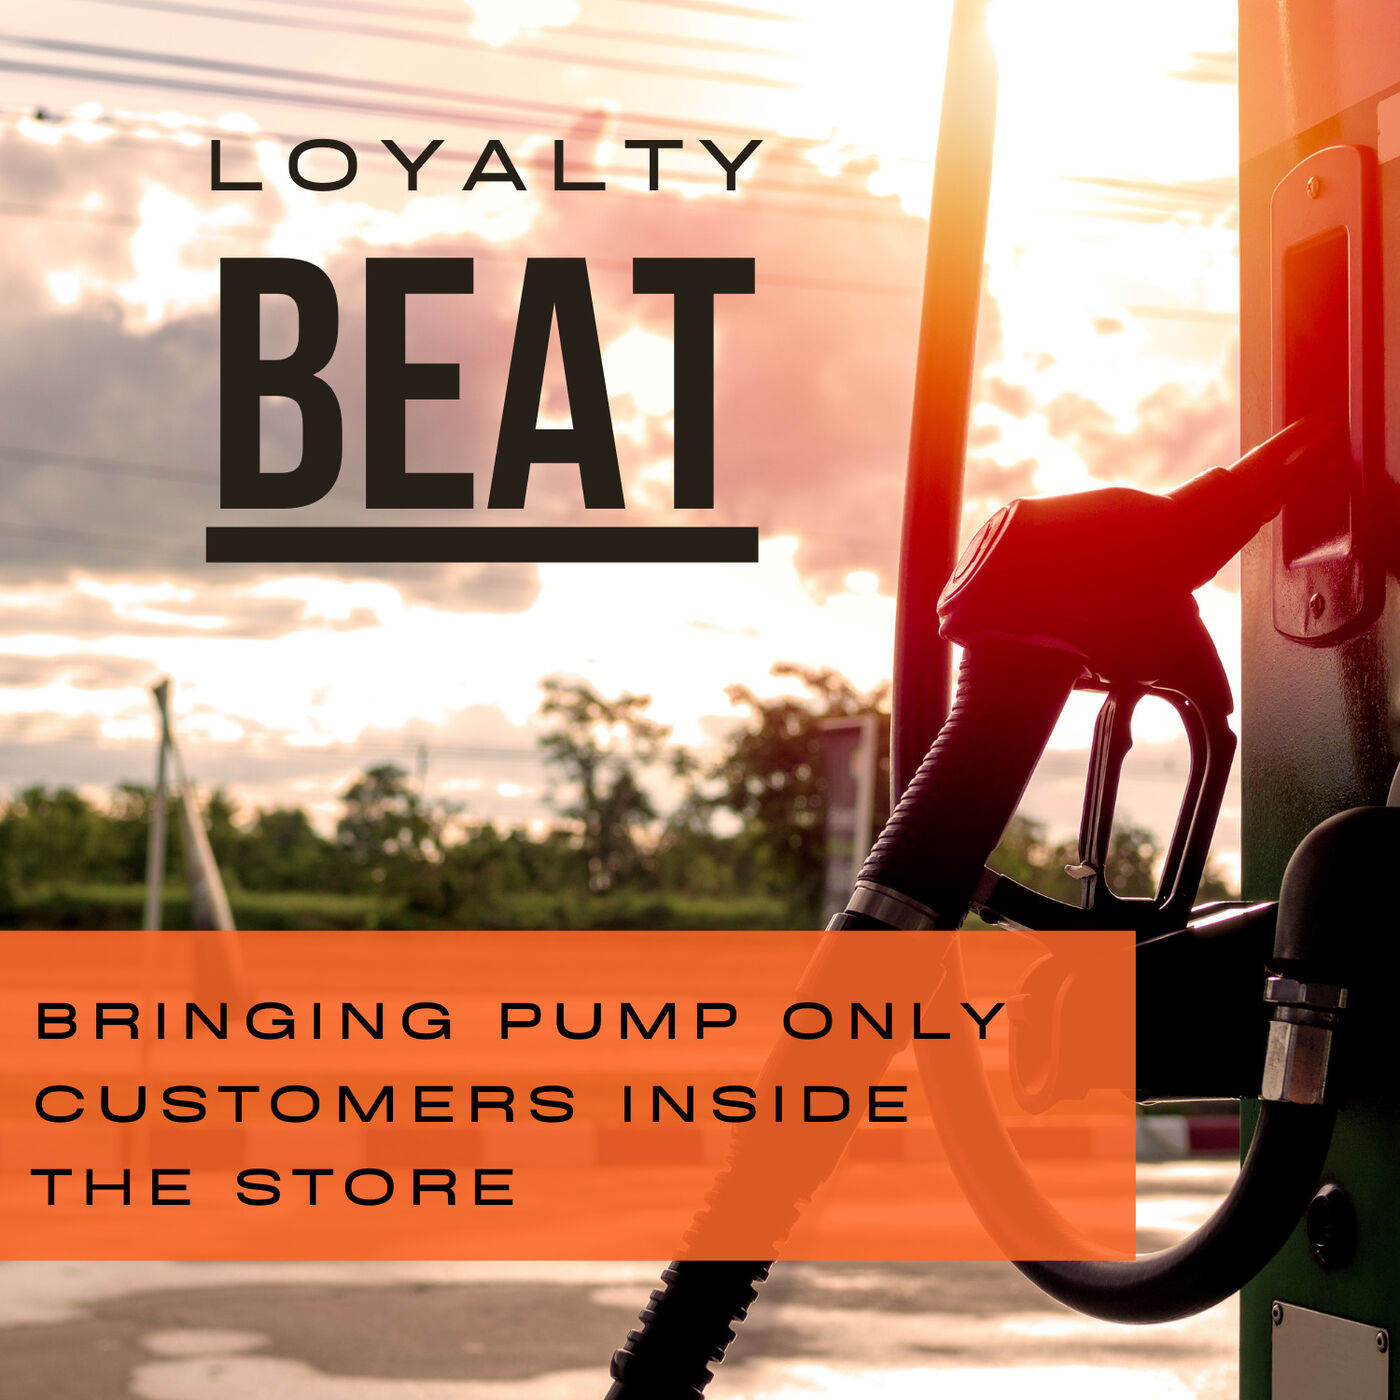 Episode 2: Bringing pump customers inside the store